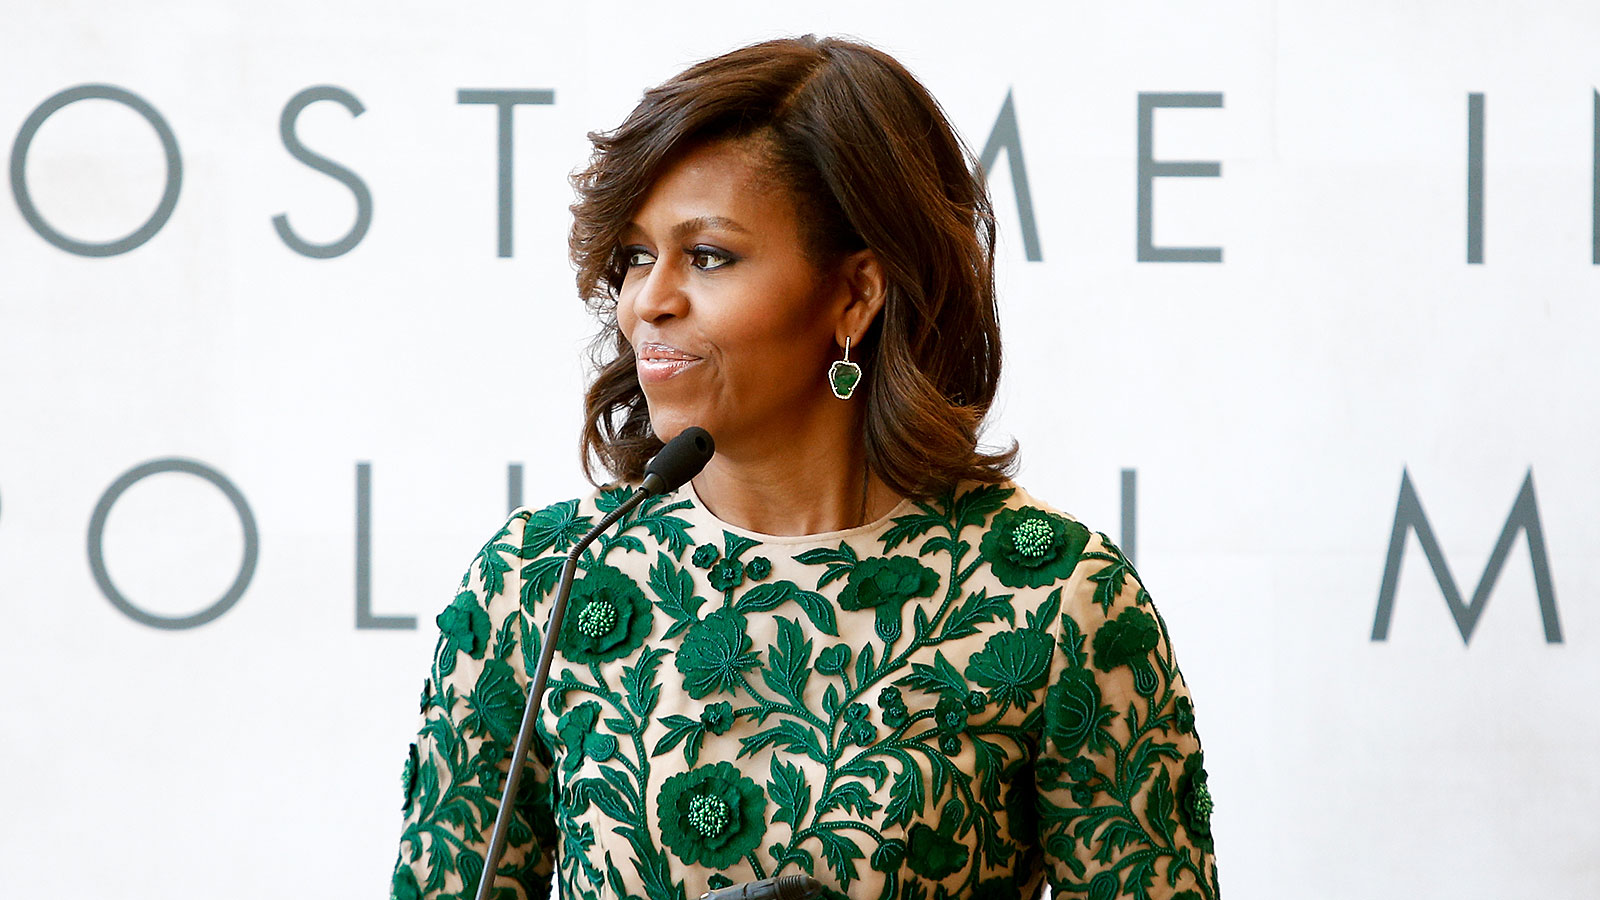 Michelle Obama talks about realizing Barack made time for the gym, but she couldn't prioritize herself